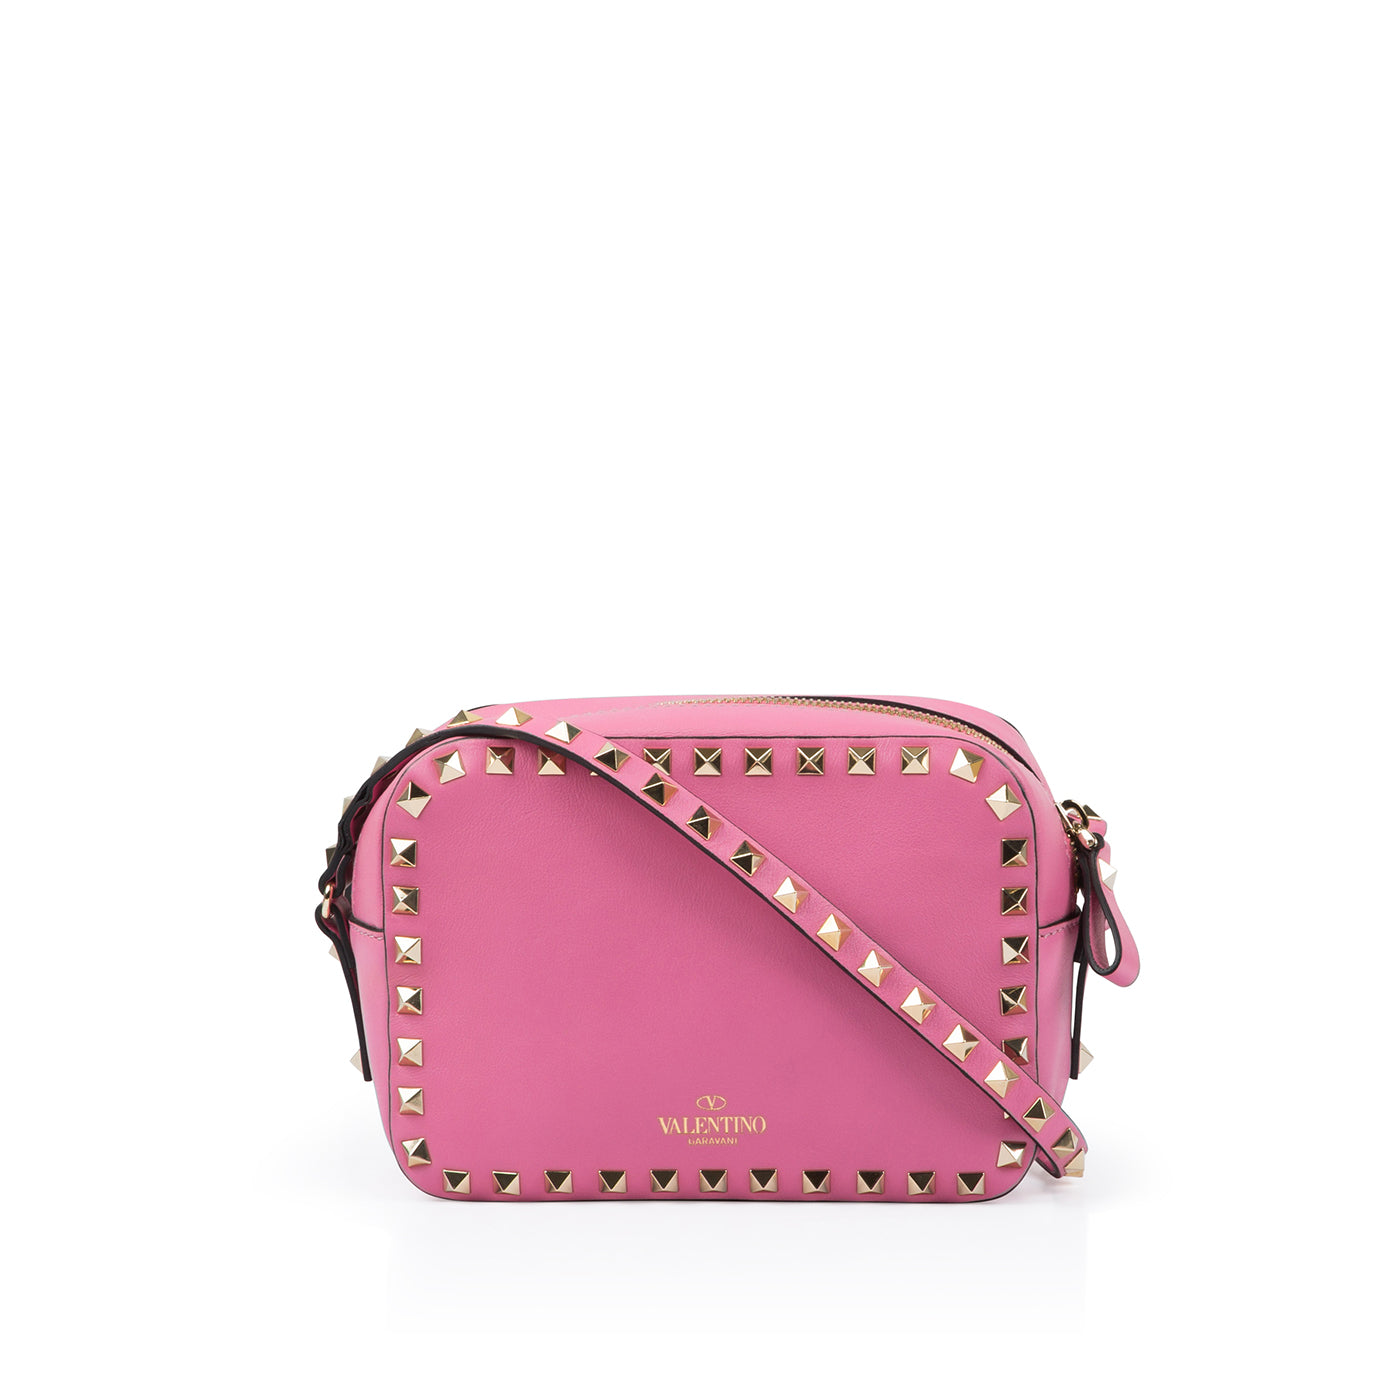 7a34aa5e061b Valentino - Rockstud small leather bag - Pink - Pre-Loved